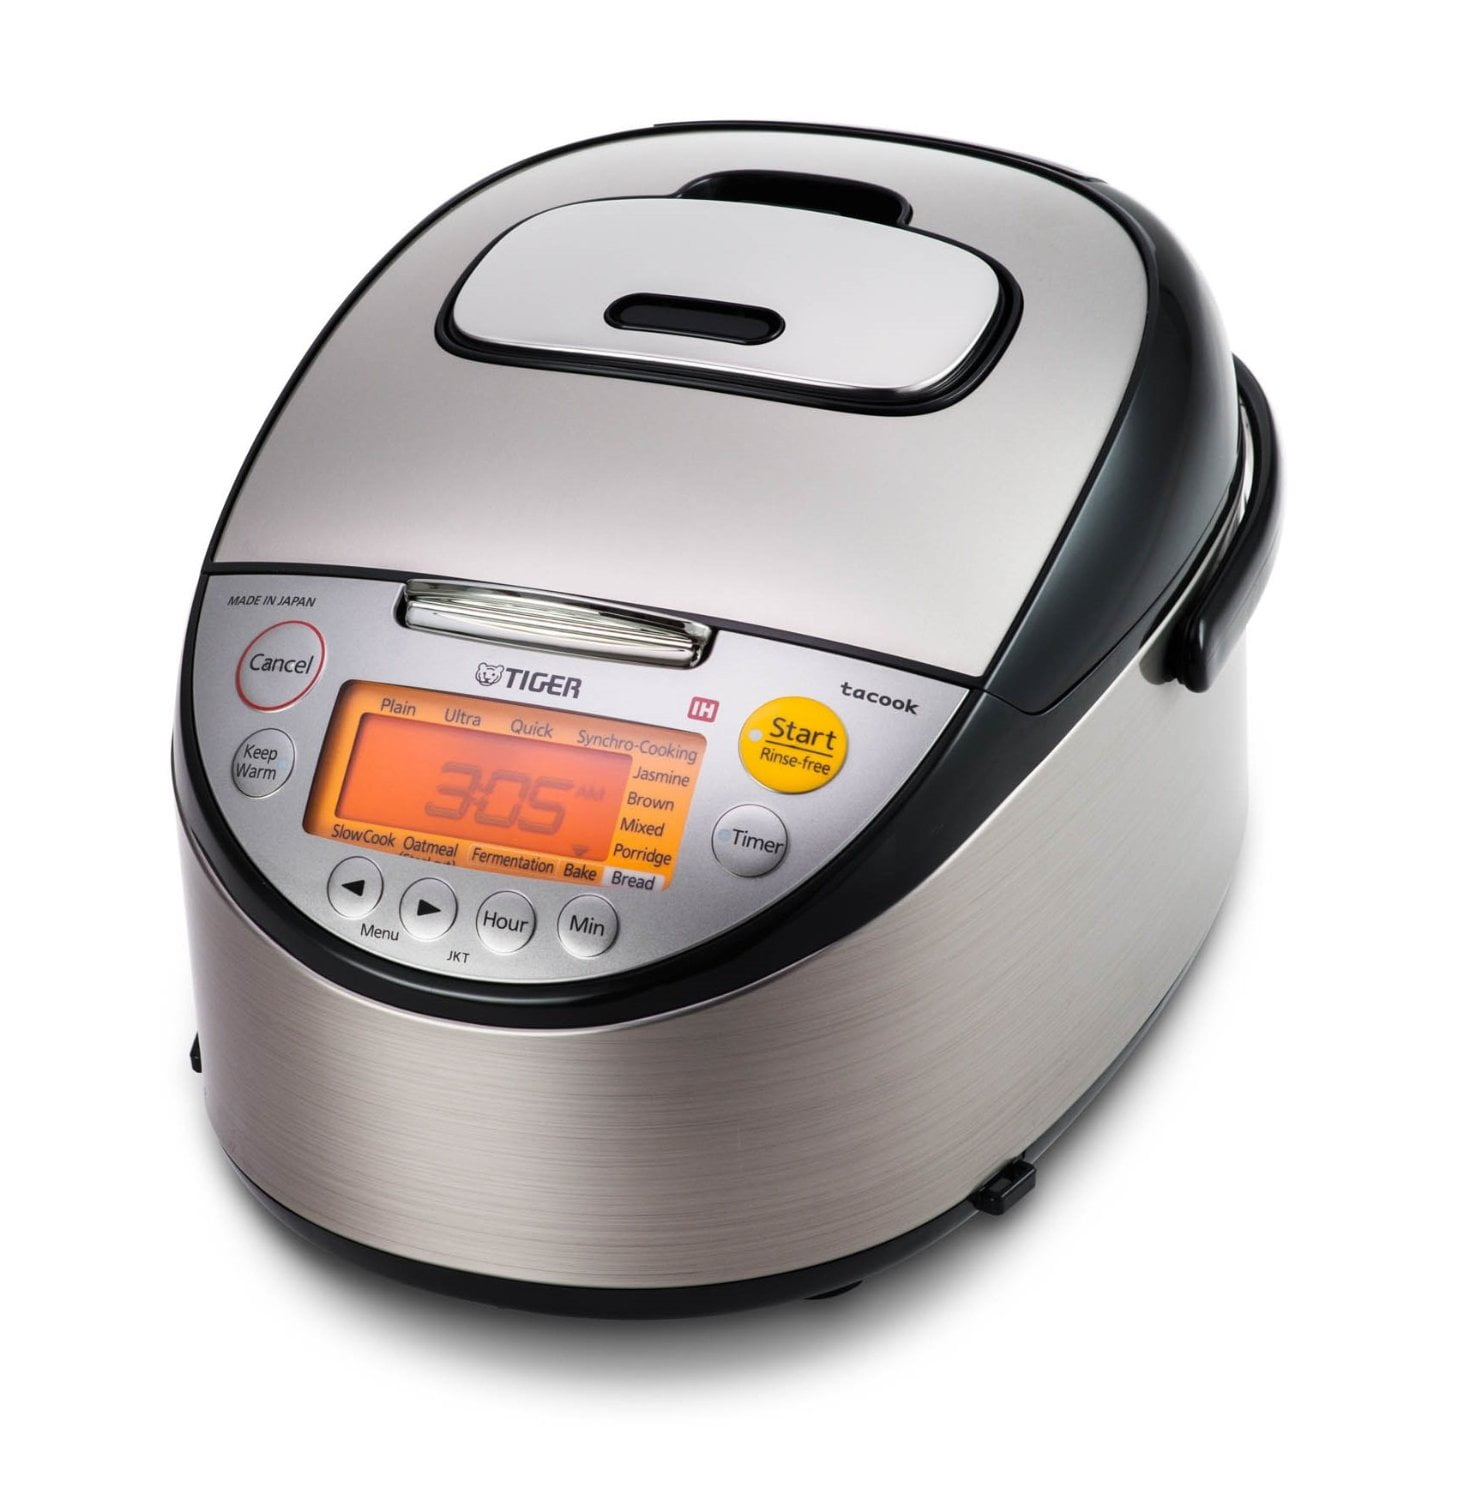 Choosing the right rice cooker for you